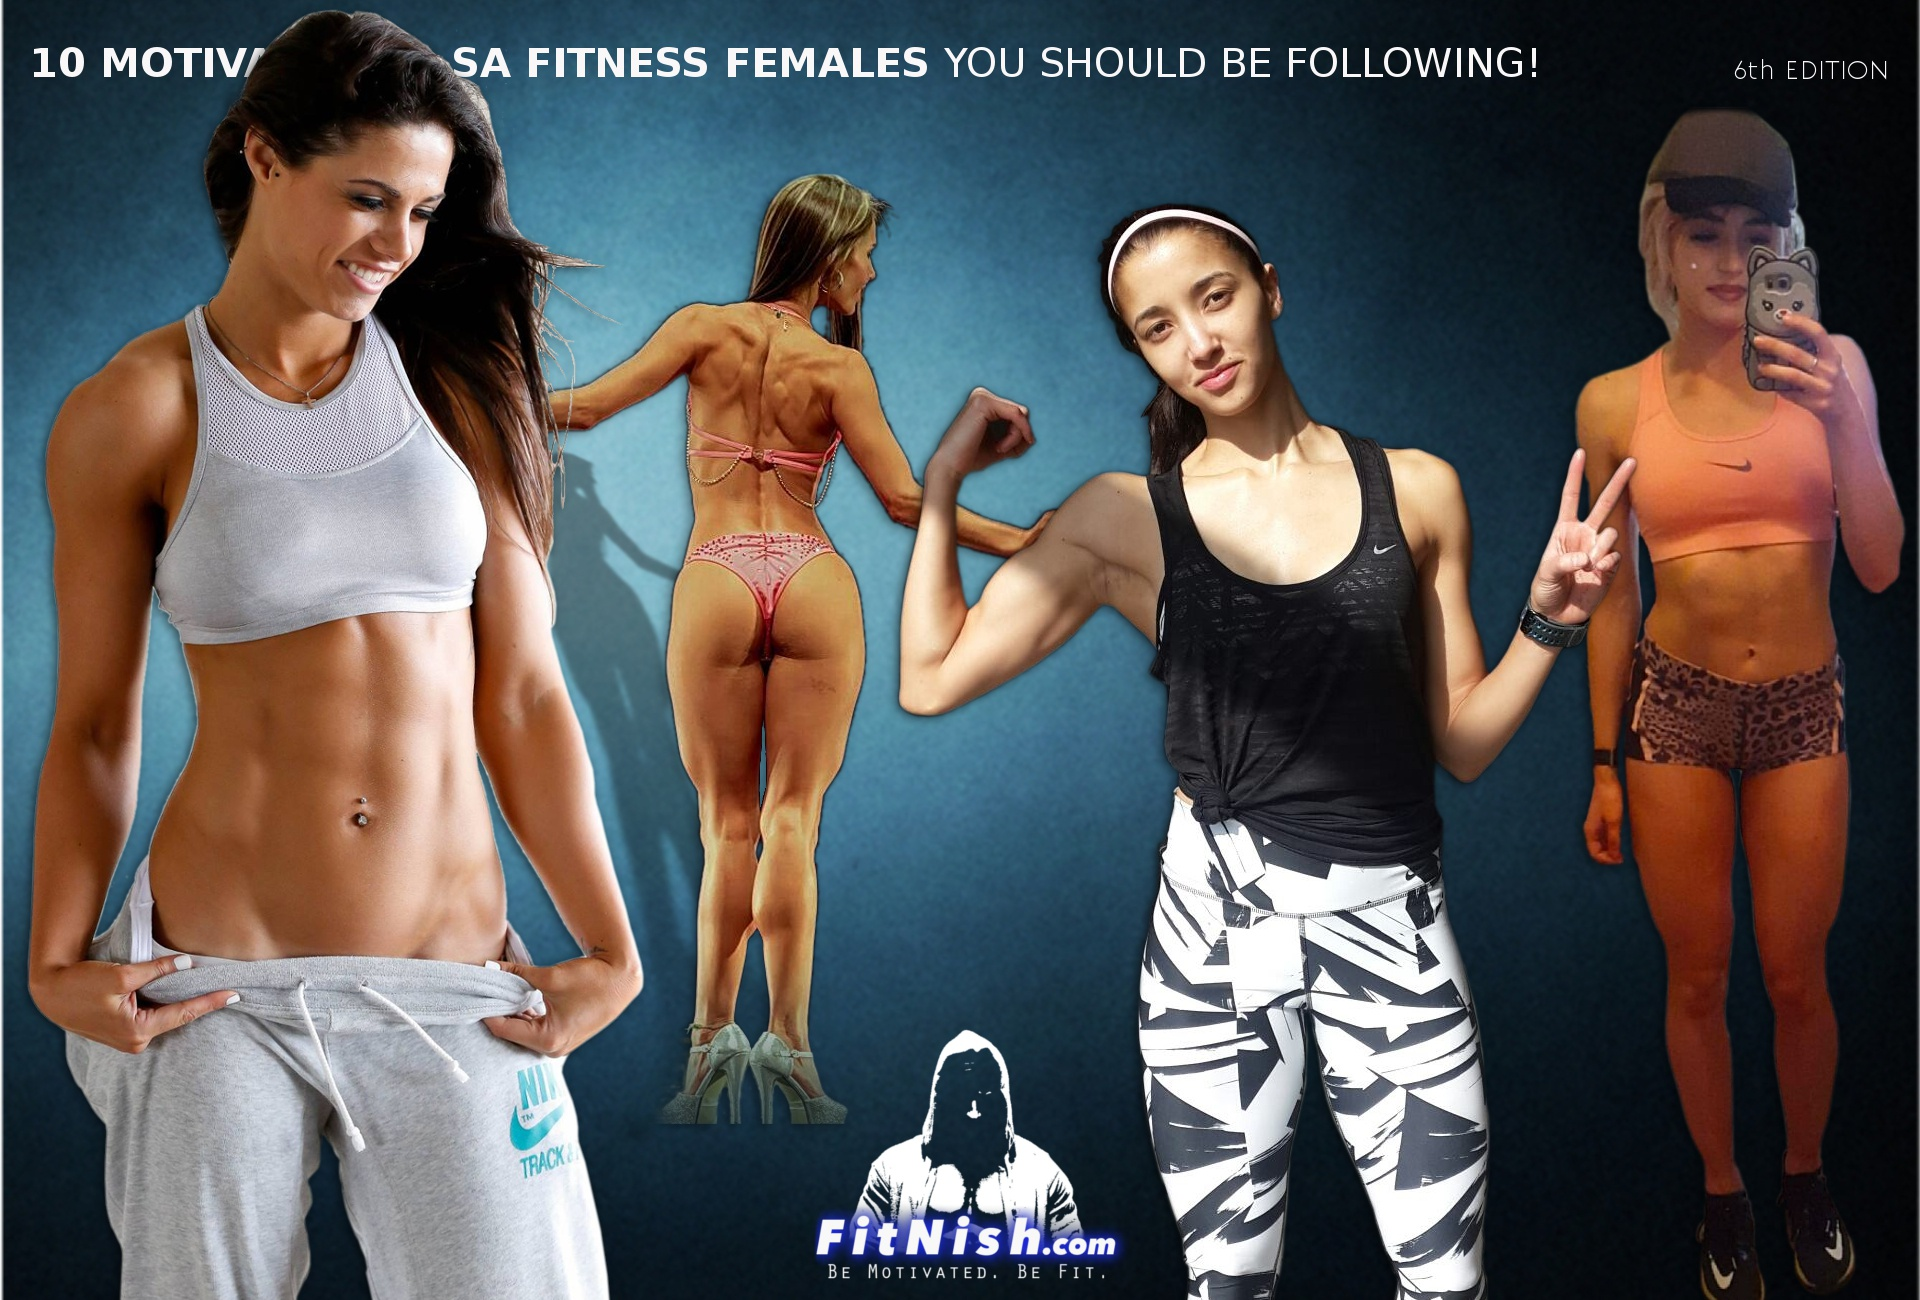 10 Motivational SA Fitness Females You Should Be Following! 6th Edition